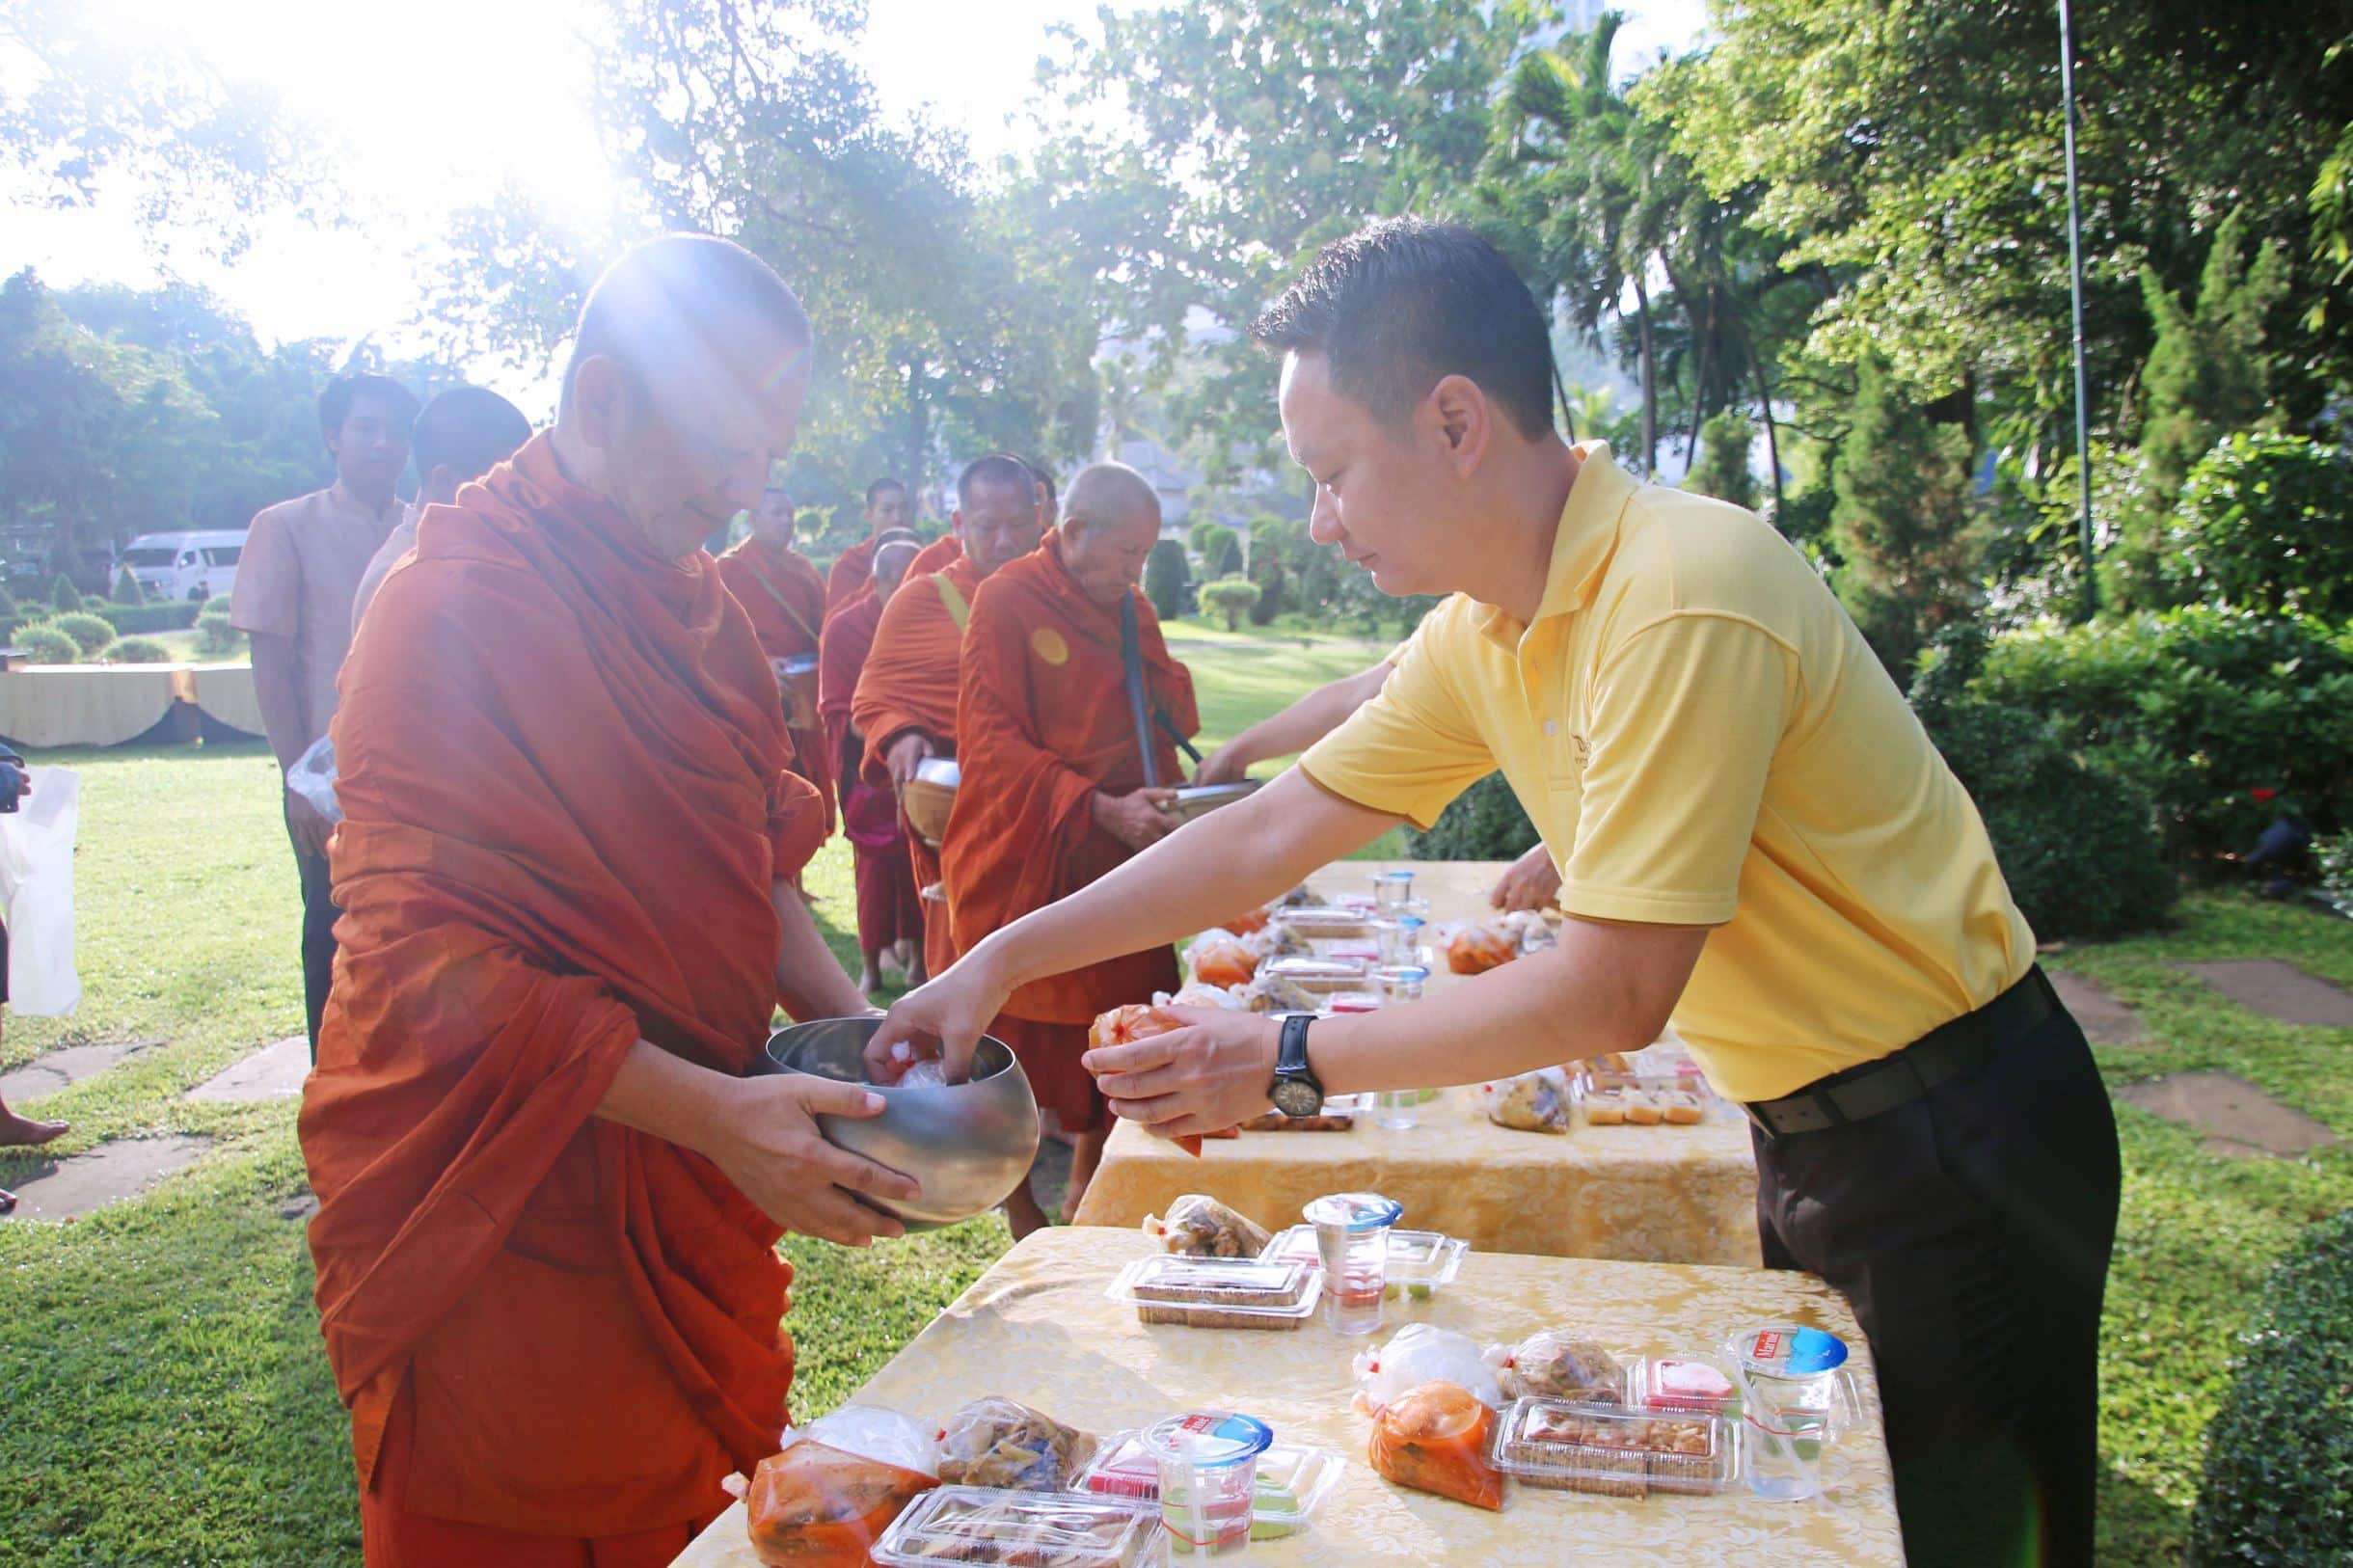 dusit pattaya, dusit thani, hotel, monks, queen, birthday, ceremony